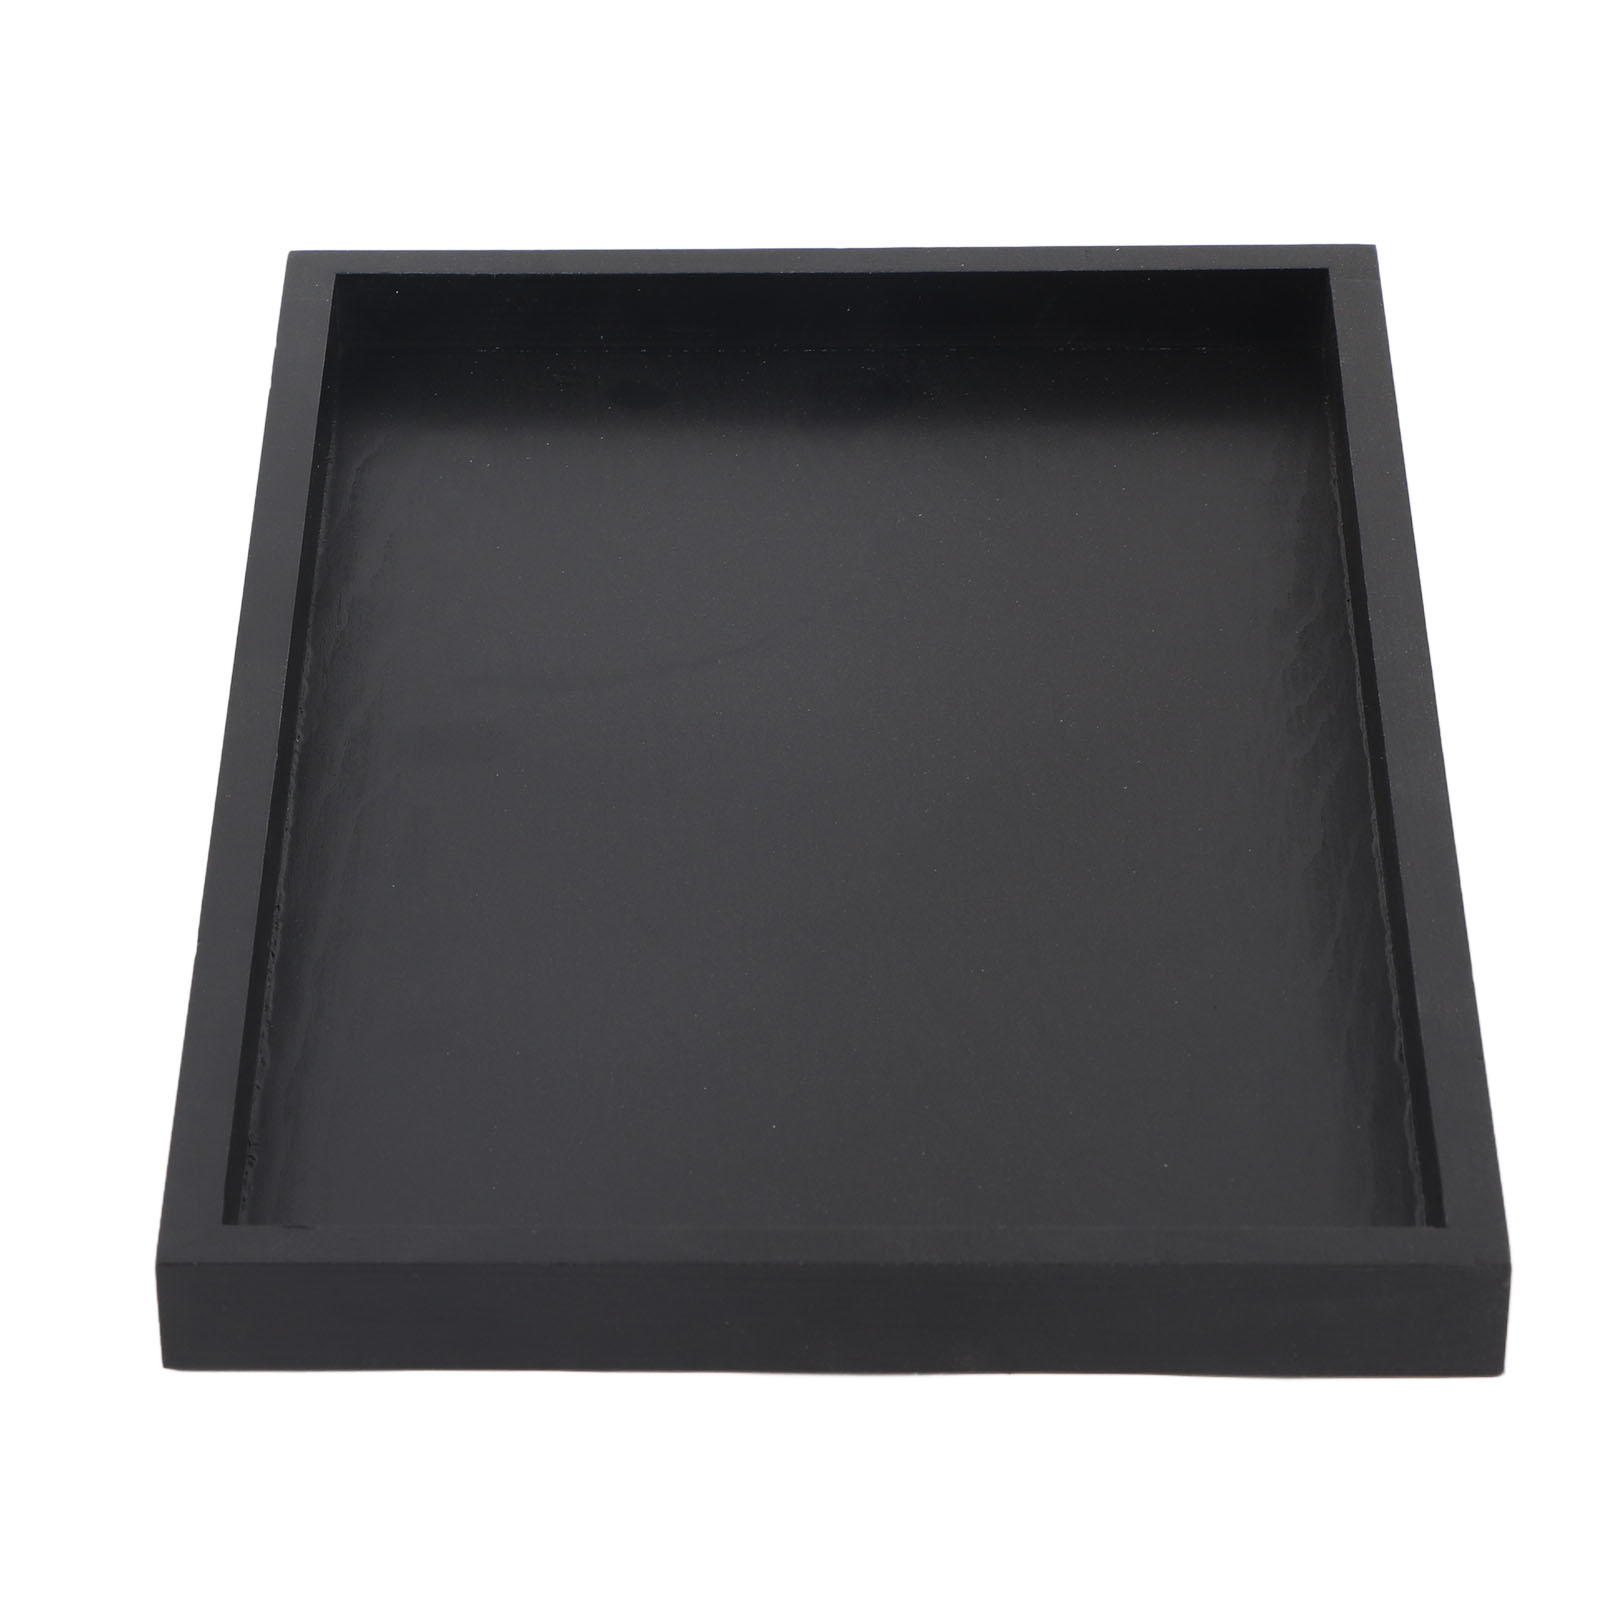 Large-Wood-Serving-Tea-Water-Drinks-Tray-Wooden-Breakfast-Food-Tea-Serving-Trays thumbnail 17